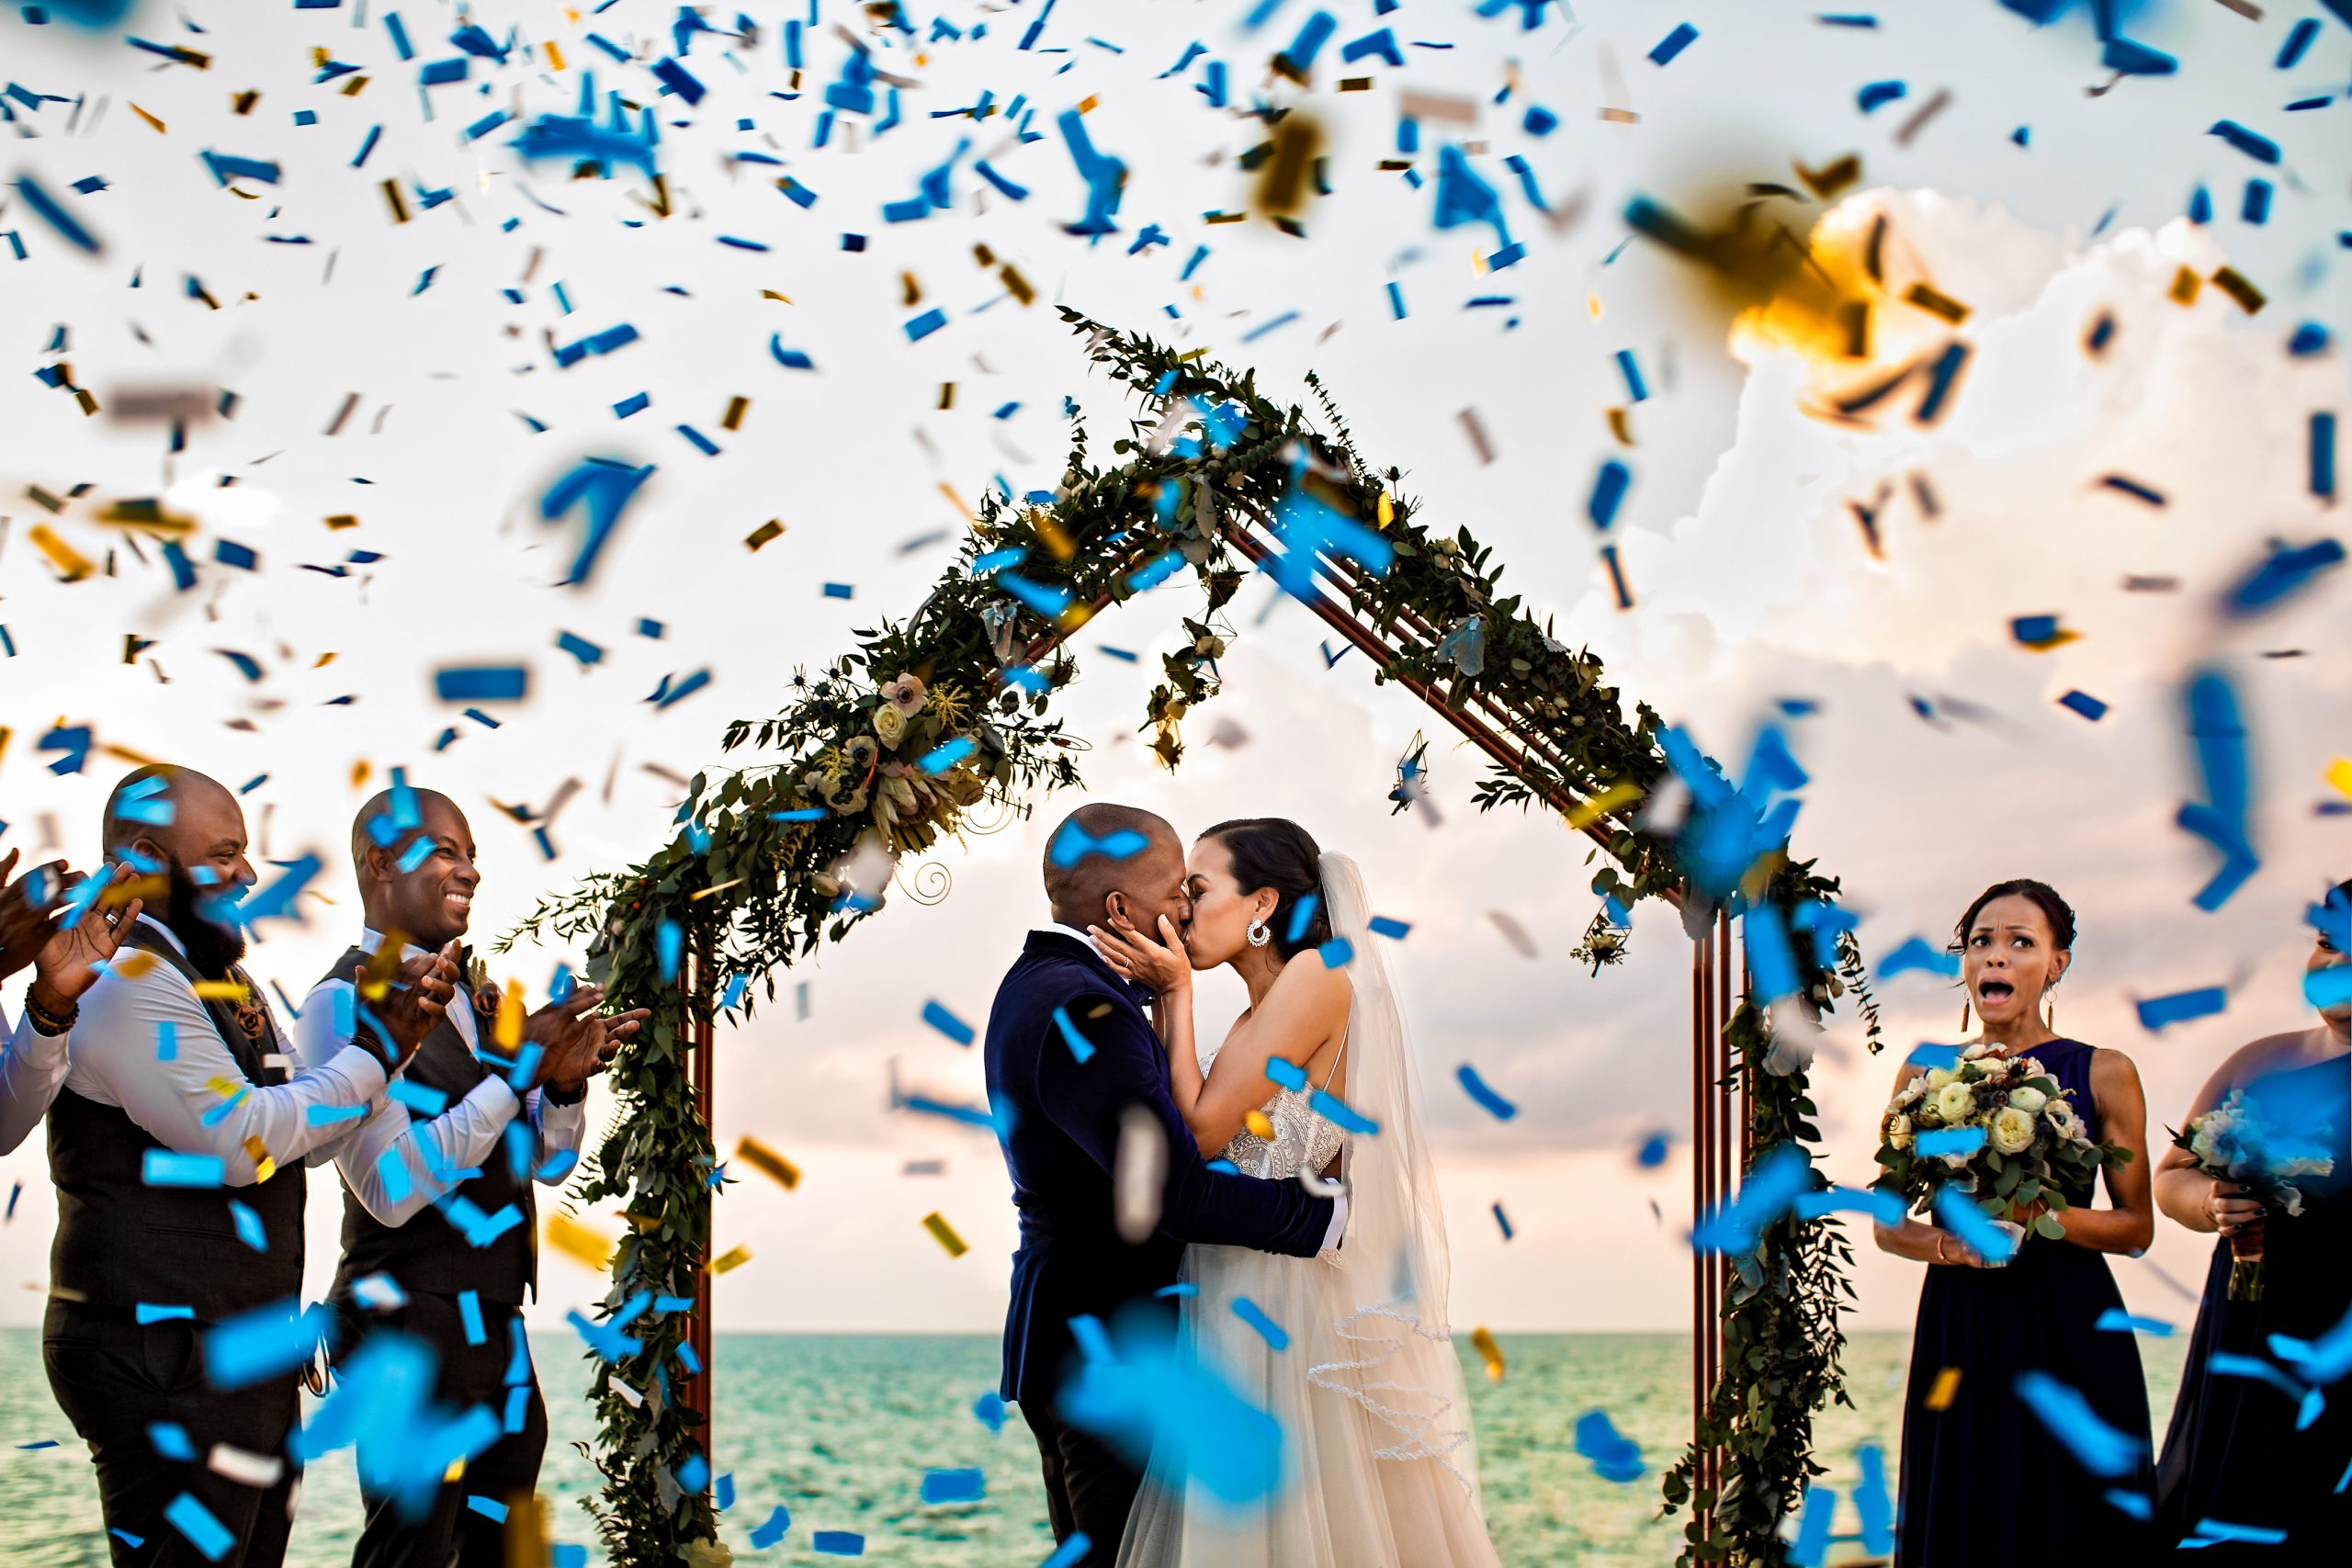 Confetti and emotions fly during a bride and groom's first kiss at a seaside ceremony.